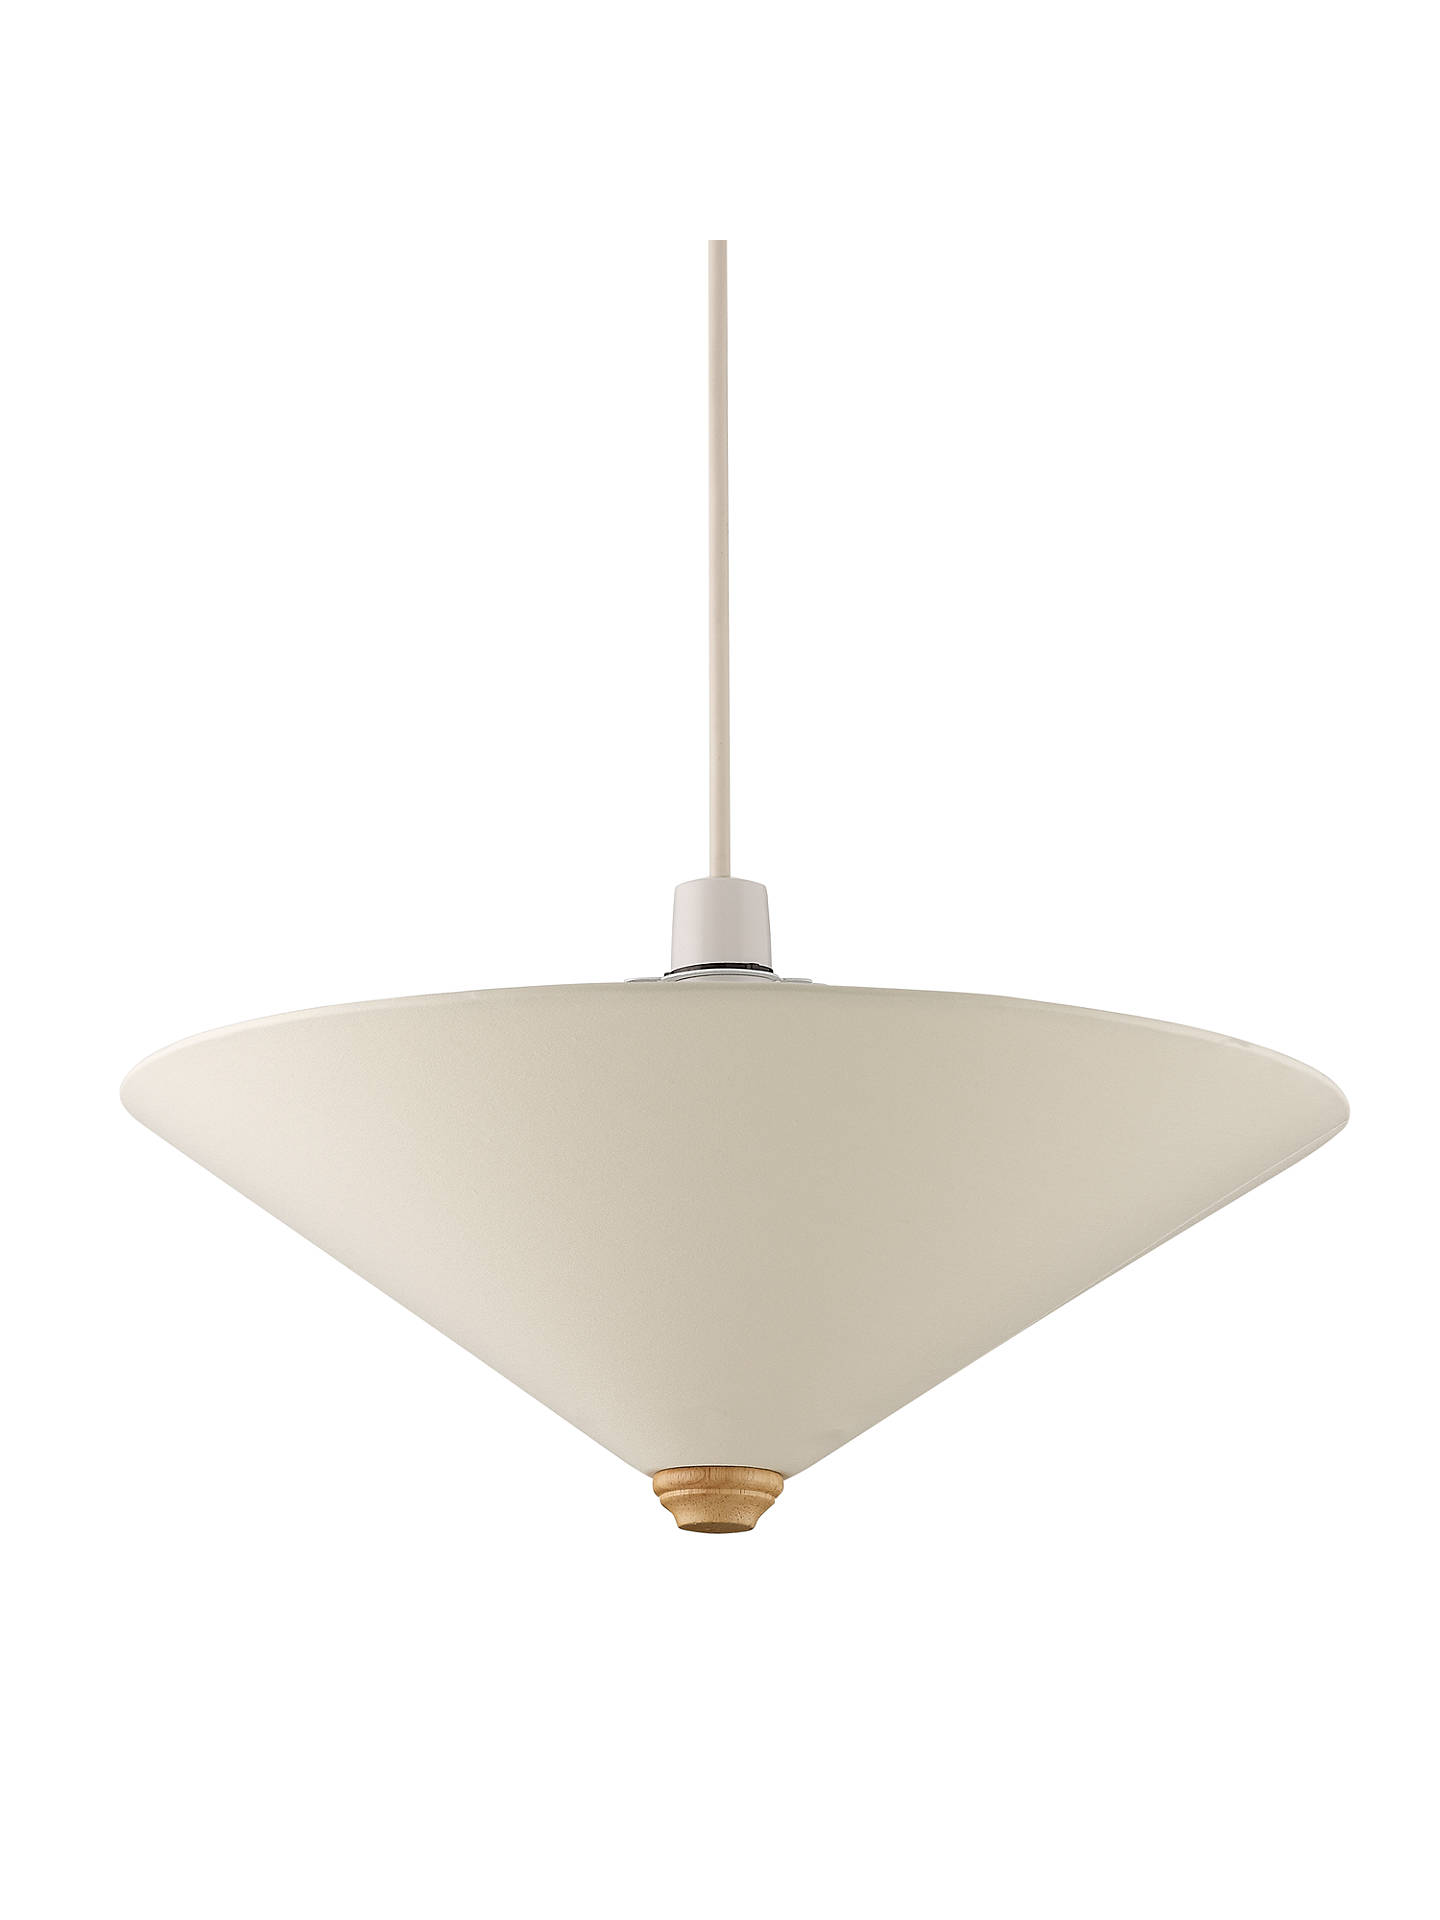 Ceiling Lamp Shade Uplighter Review Home Decor